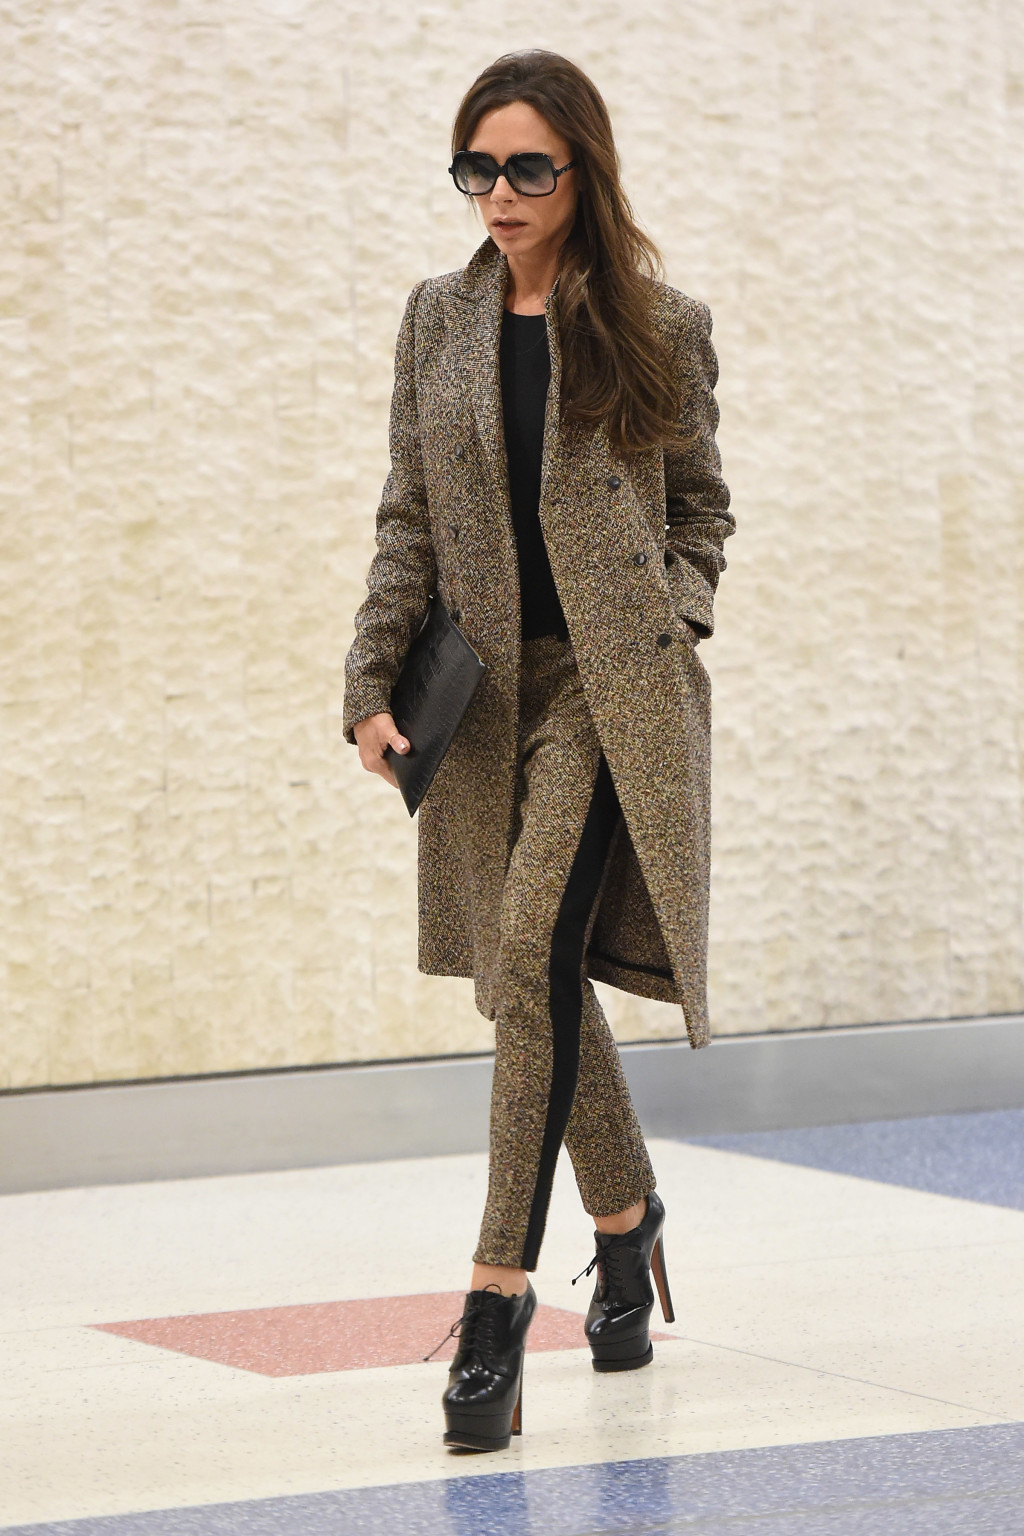 Victoria Beckham arrives at JFK airport in NYC.